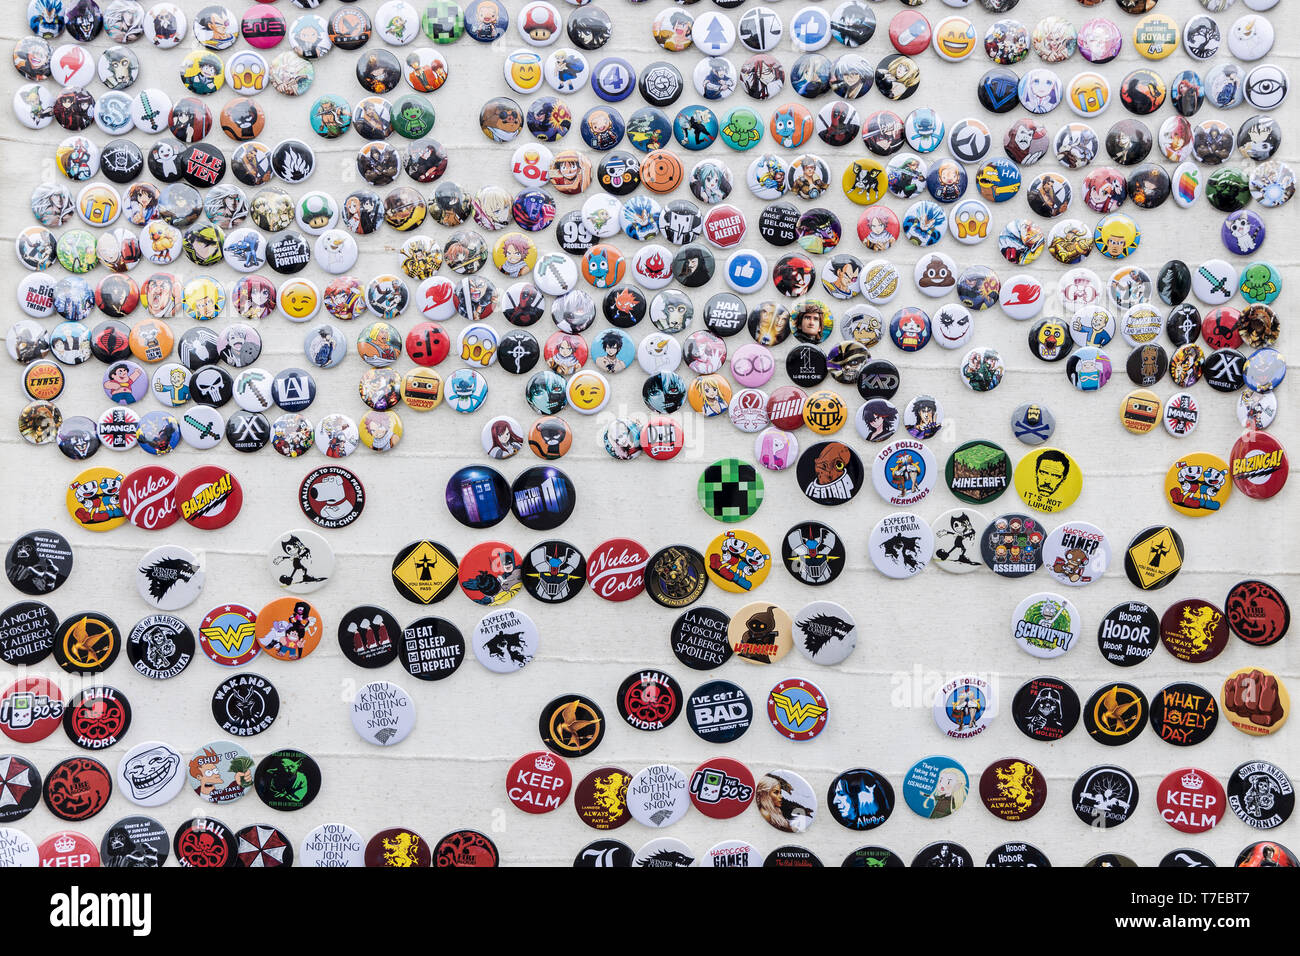 Wall of badges depicting cartoon and SciFi characters and slogans in english and Spanish - Stock Image